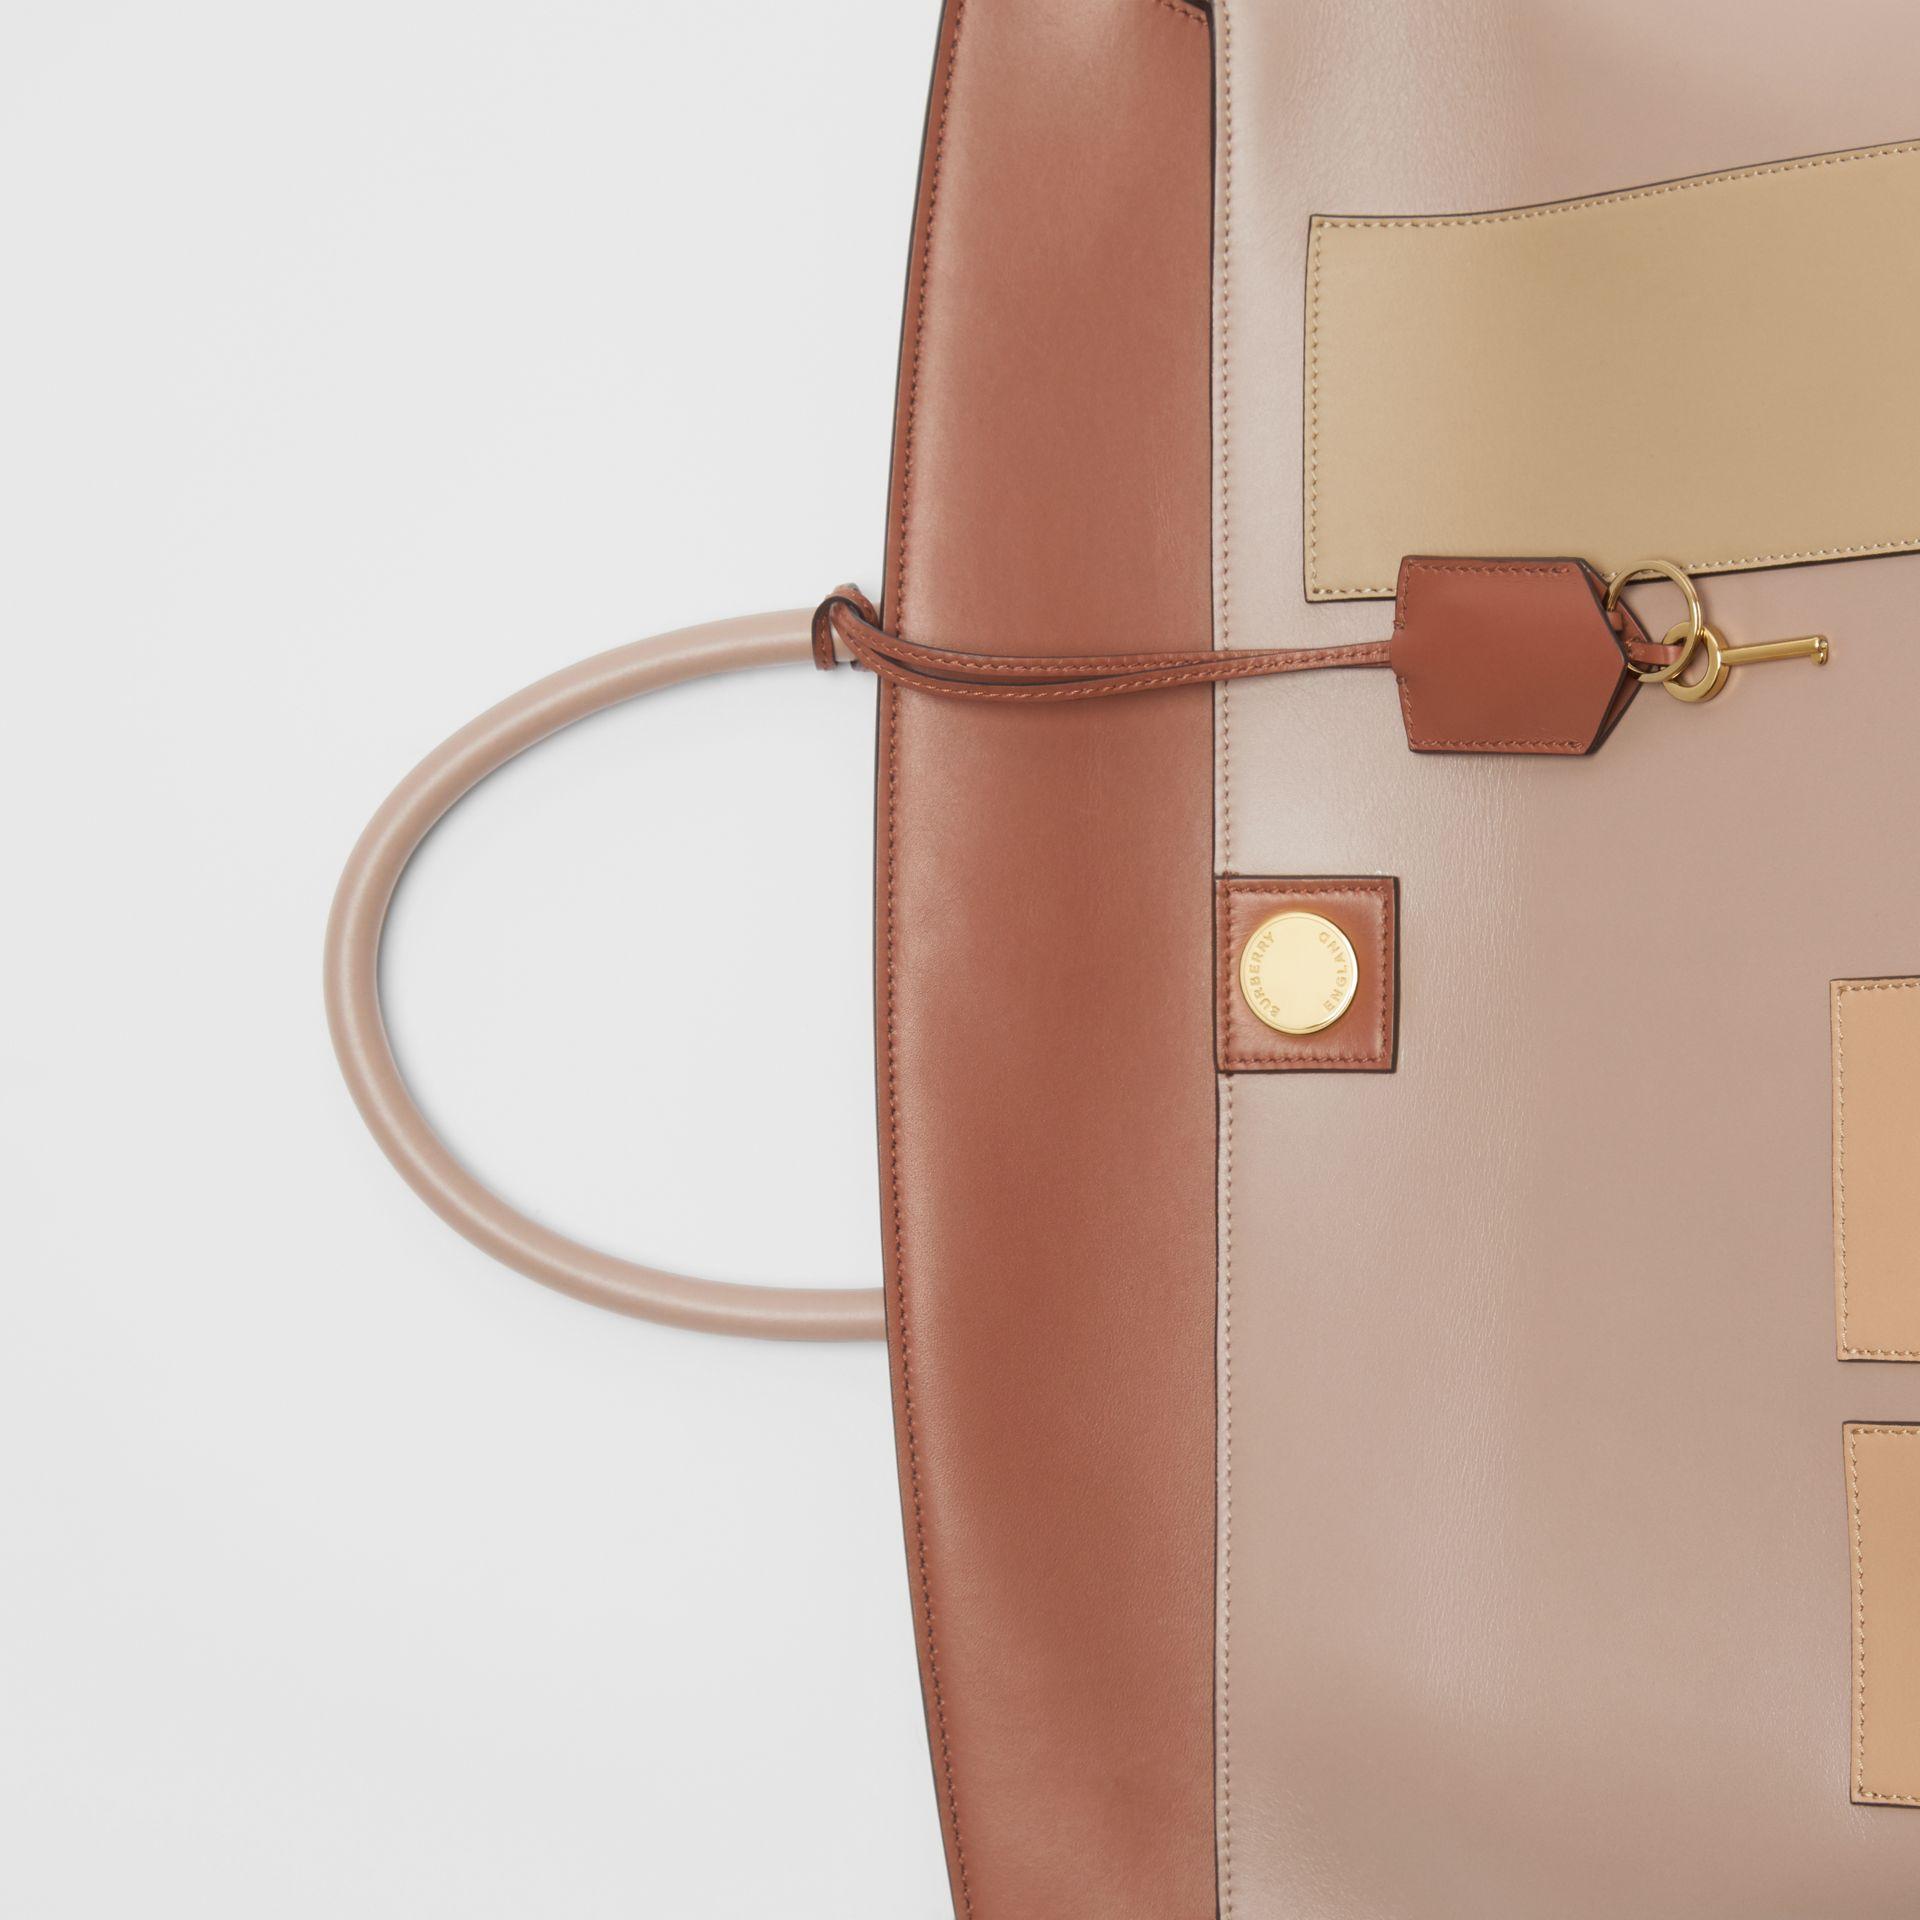 Leather Society Top Handle Bag in Pale Mink - Women | Burberry United States - gallery image 1